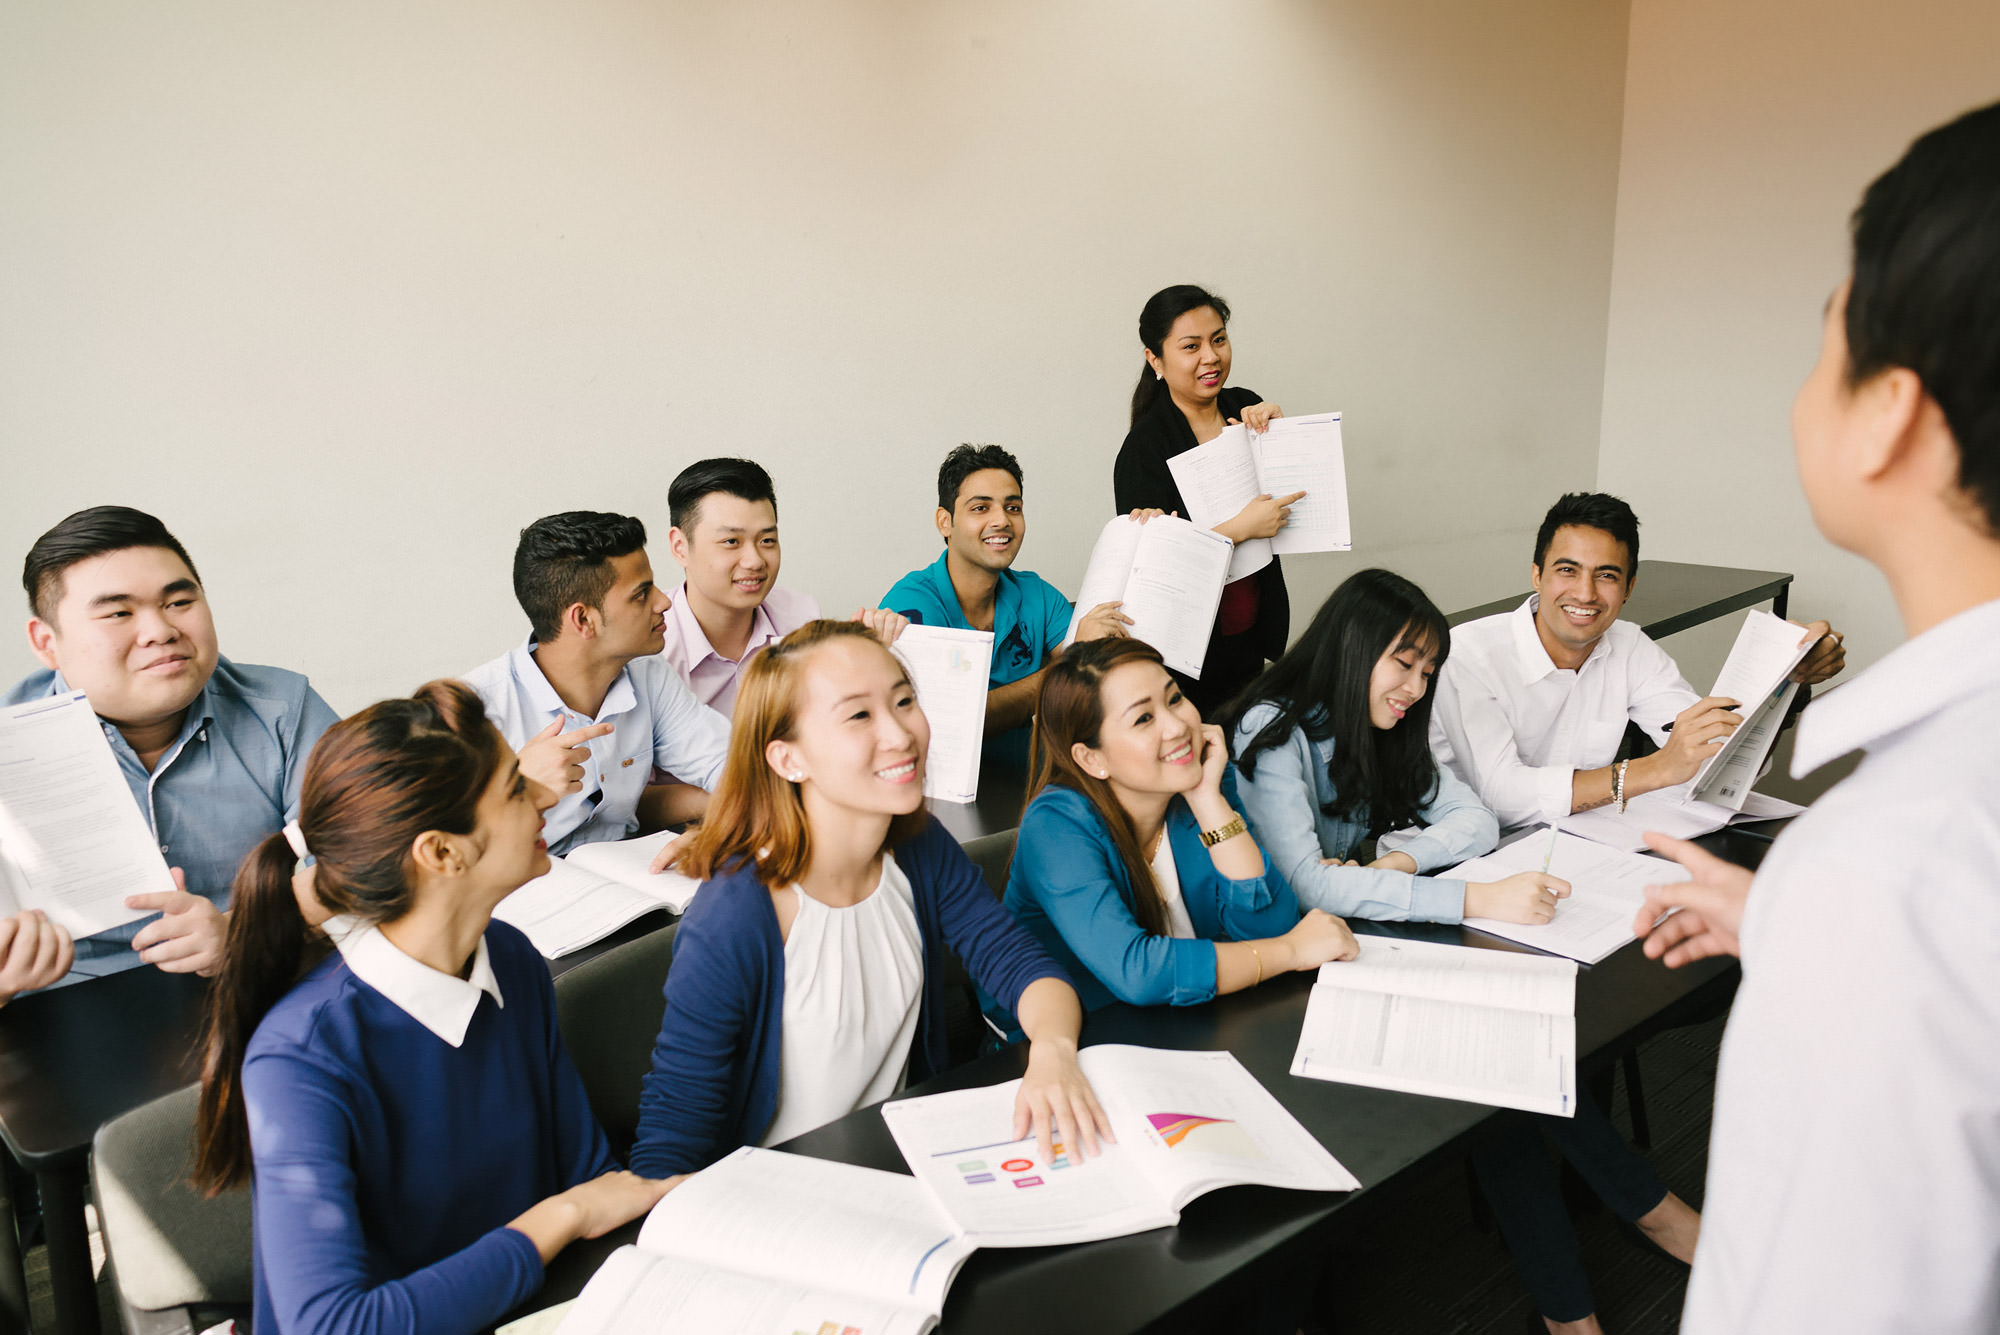 btec hnd in business The edexcel level 5 hnd qualification is a uk accredited course which is  the  level 5 hnd business management will increase your earning potential.